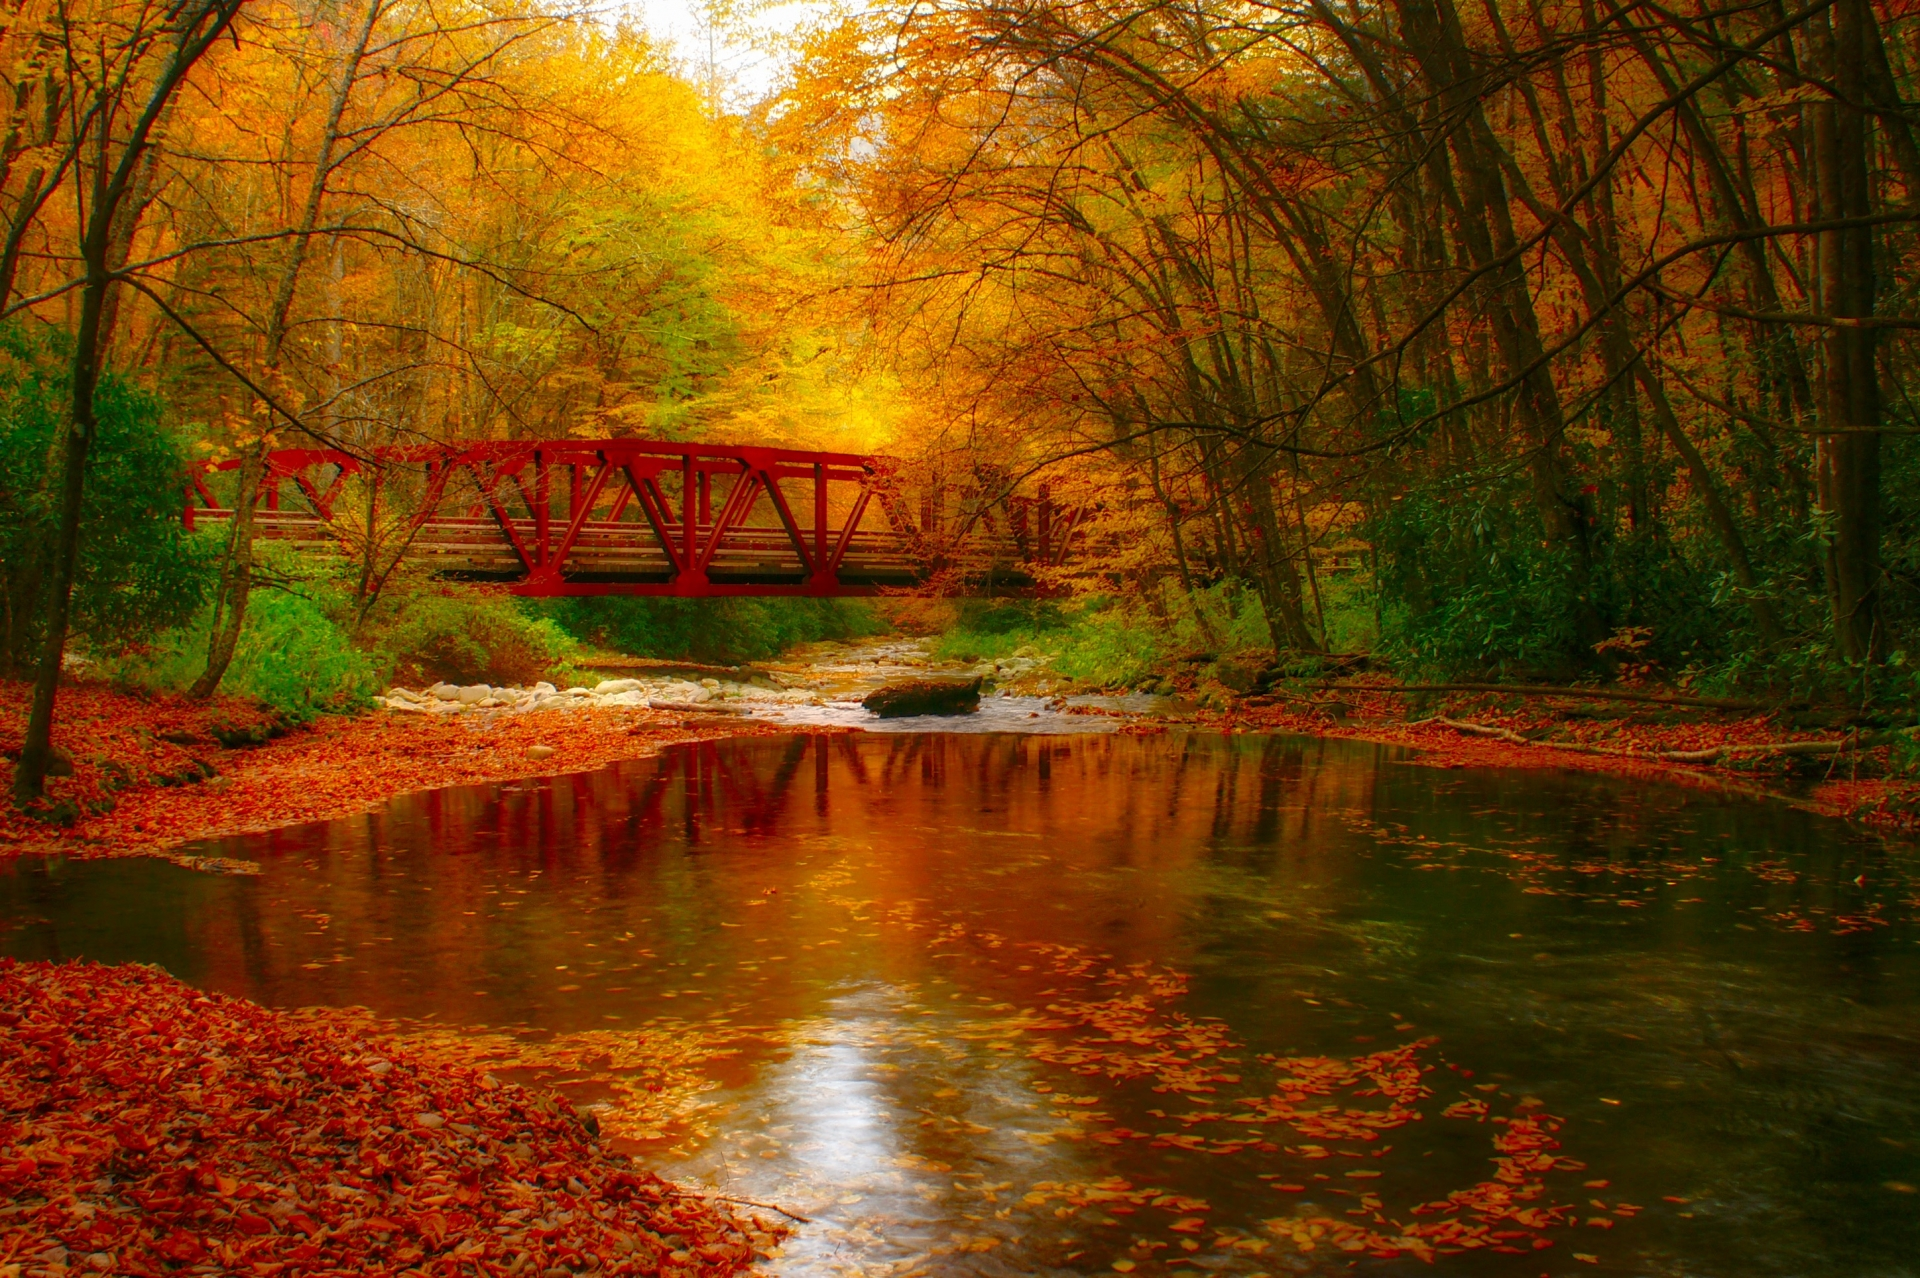 The bright red bridge crossing the Oconaluftee River inside The Great Smoky Mountains National Park.